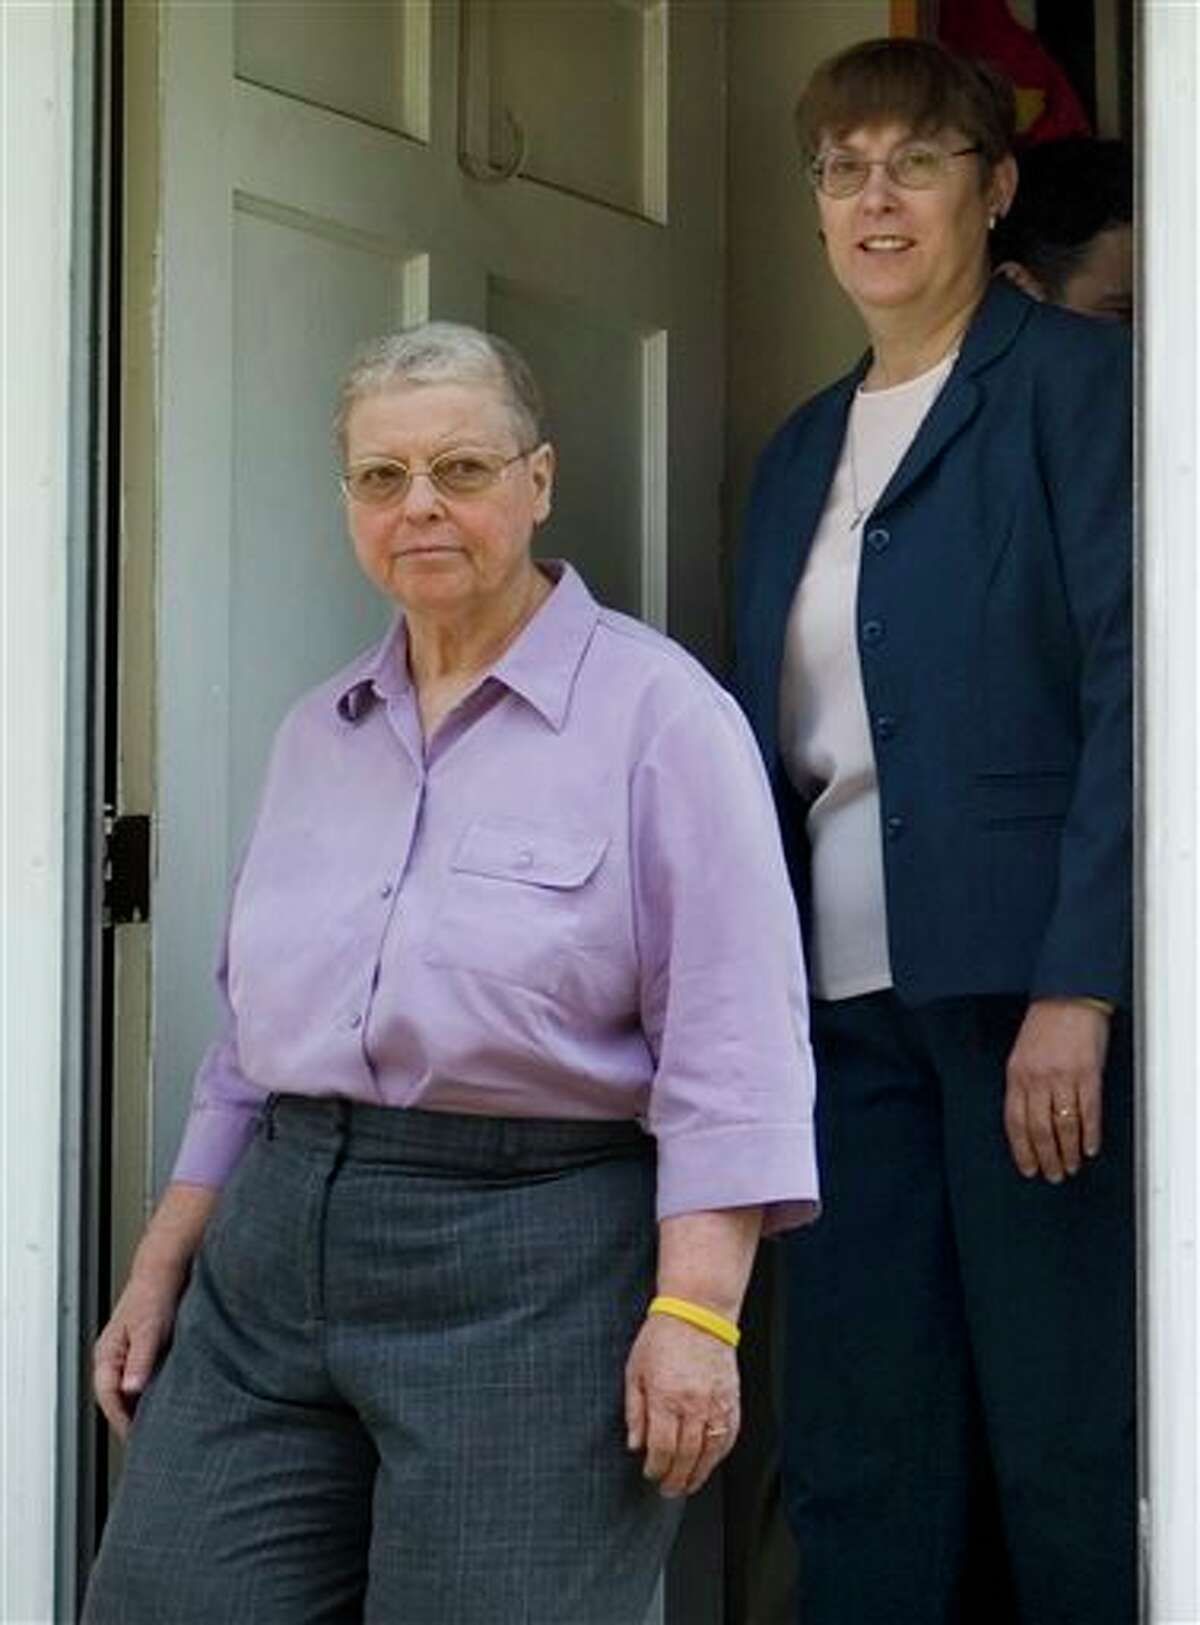 FILE - This July 18, 2006 file photo shows Margaret Mueller, right, and Charlotte Stacey at their home in Norwalk, Conn. Connecticut's highest court ruled Wednesday that some legal rights of same-sex couples predate the state's approvals of civil unions in 2005 and gay marriage in 2008, a decision that gay rights supporters call the first of its kind in the country. The case involved Mueller and Stacey who had a civil union in Connecticut in 2005 and got married in Massachusetts in 2008 after 23 years together under that state's gay marriage law, shortly before the Connecticut Supreme Court approved gay marriage. (AP Photo/Douglas Healey)